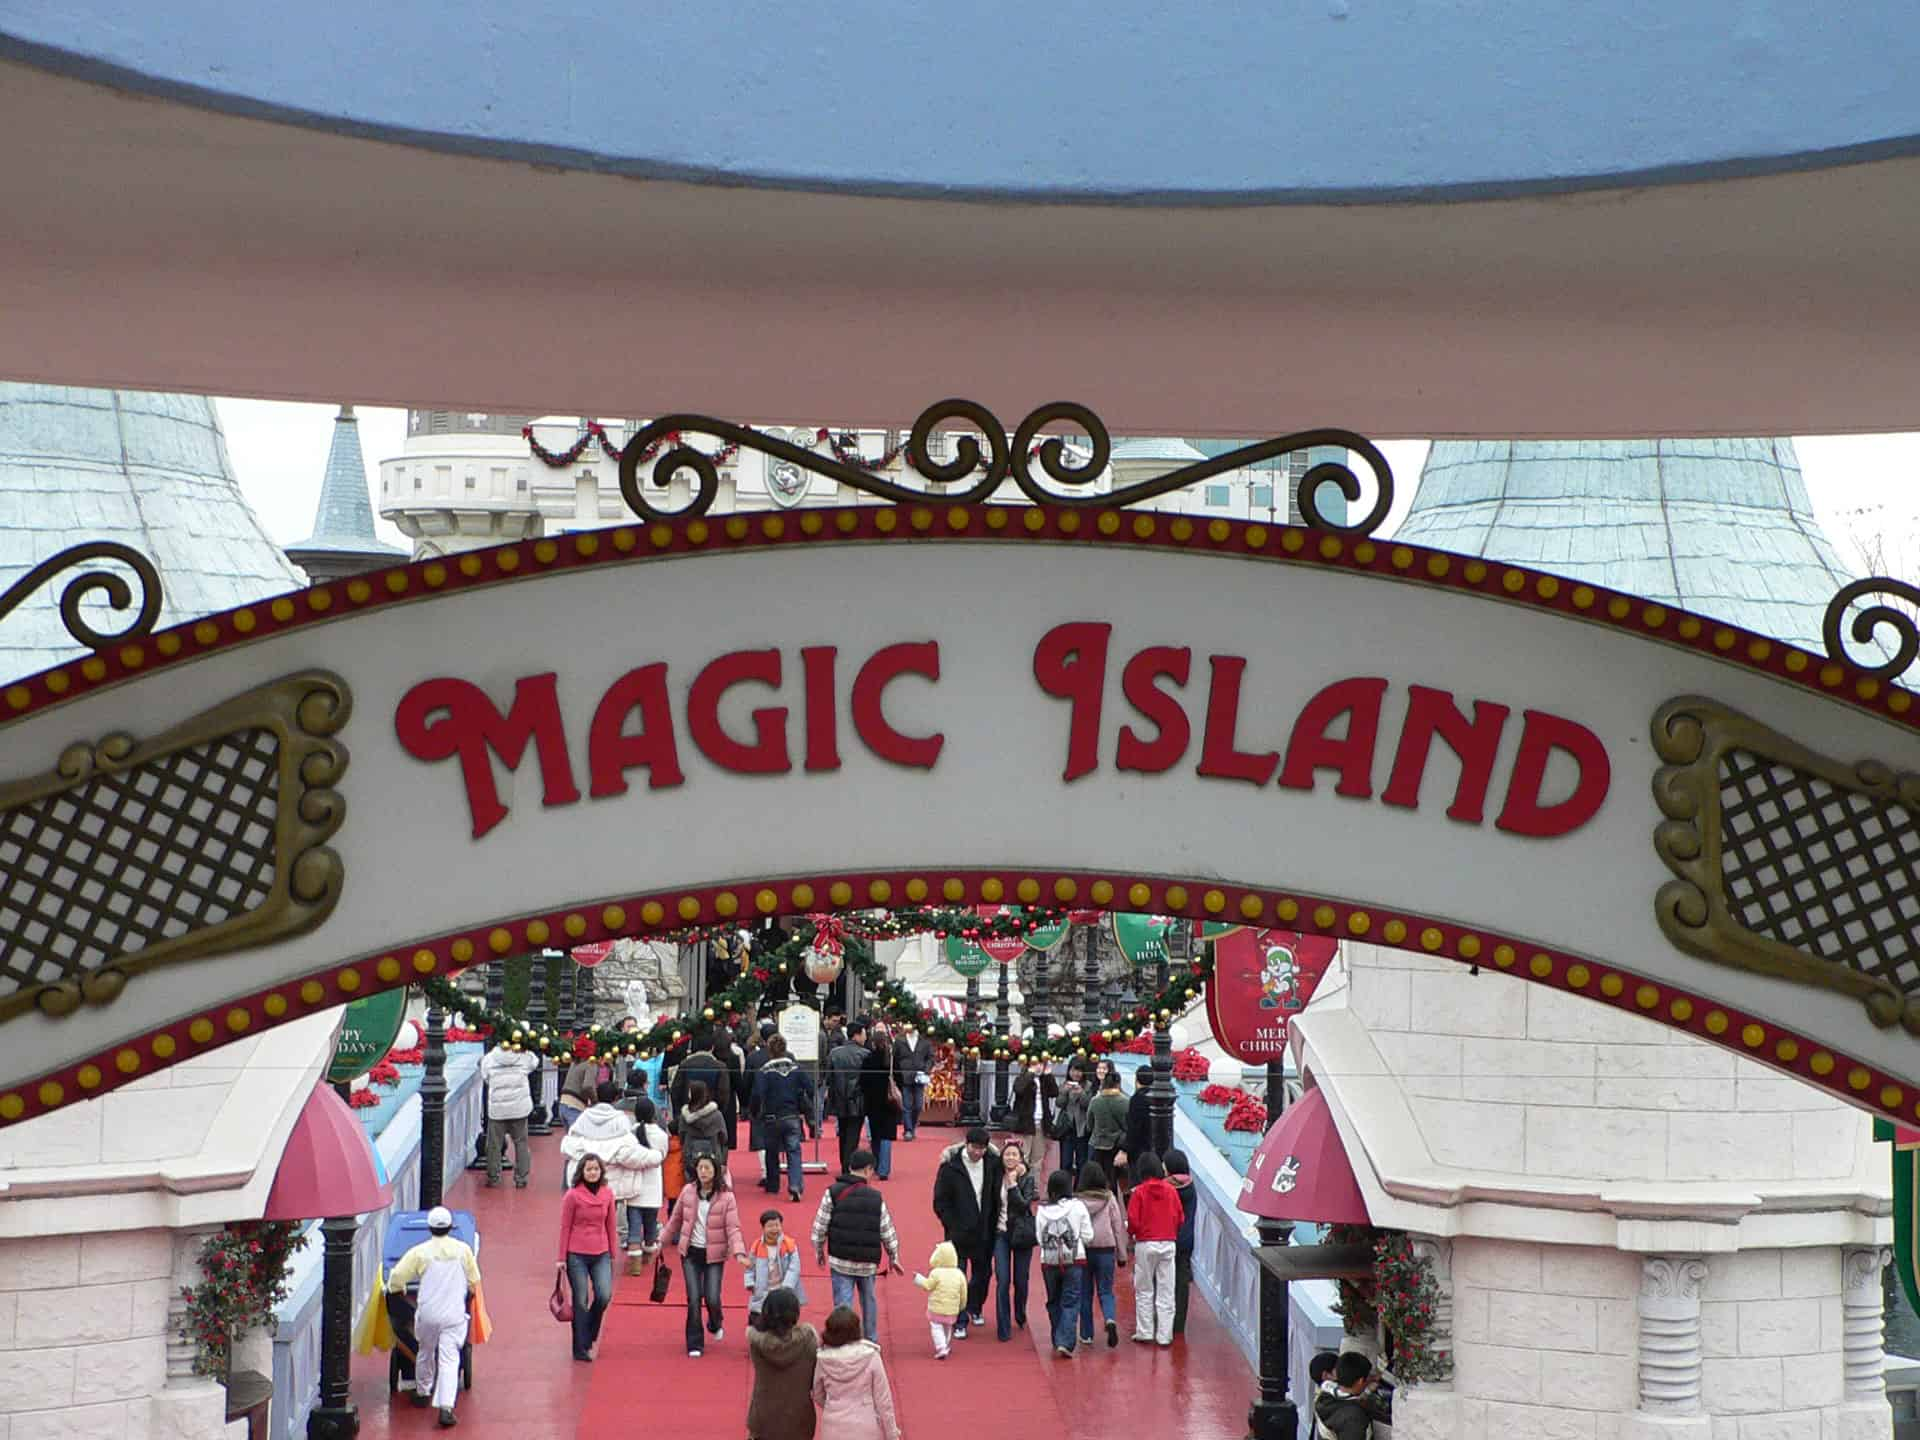 Lotte World, Magic Island, Seoul, South Korea